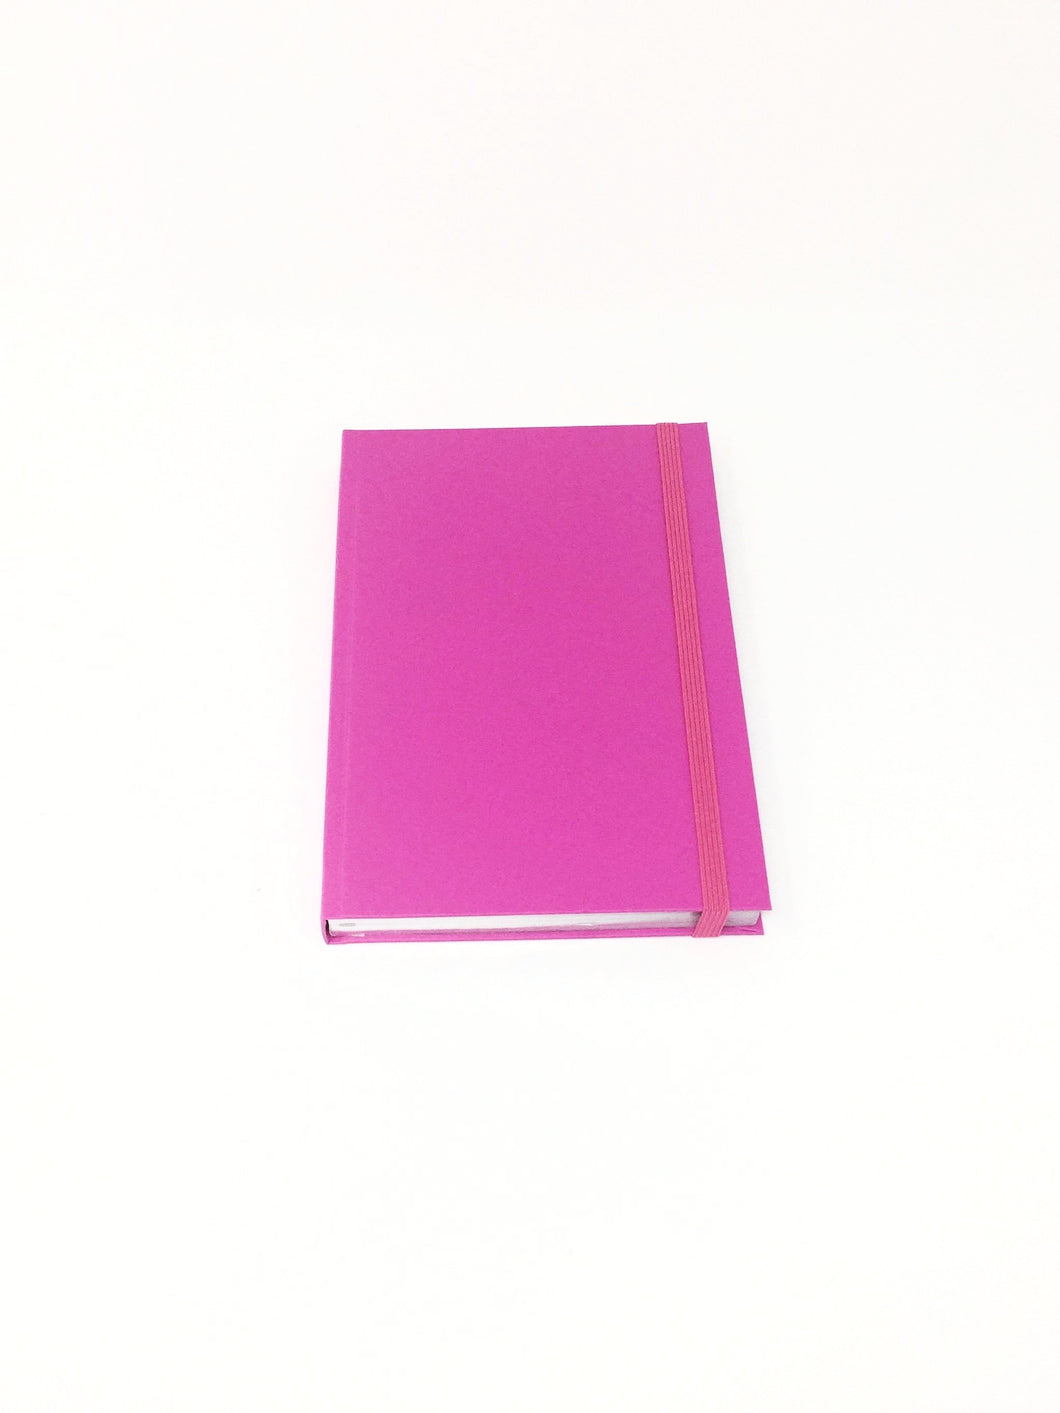 Giemme Box notebook - fuschia pink. Lined pages with silver border